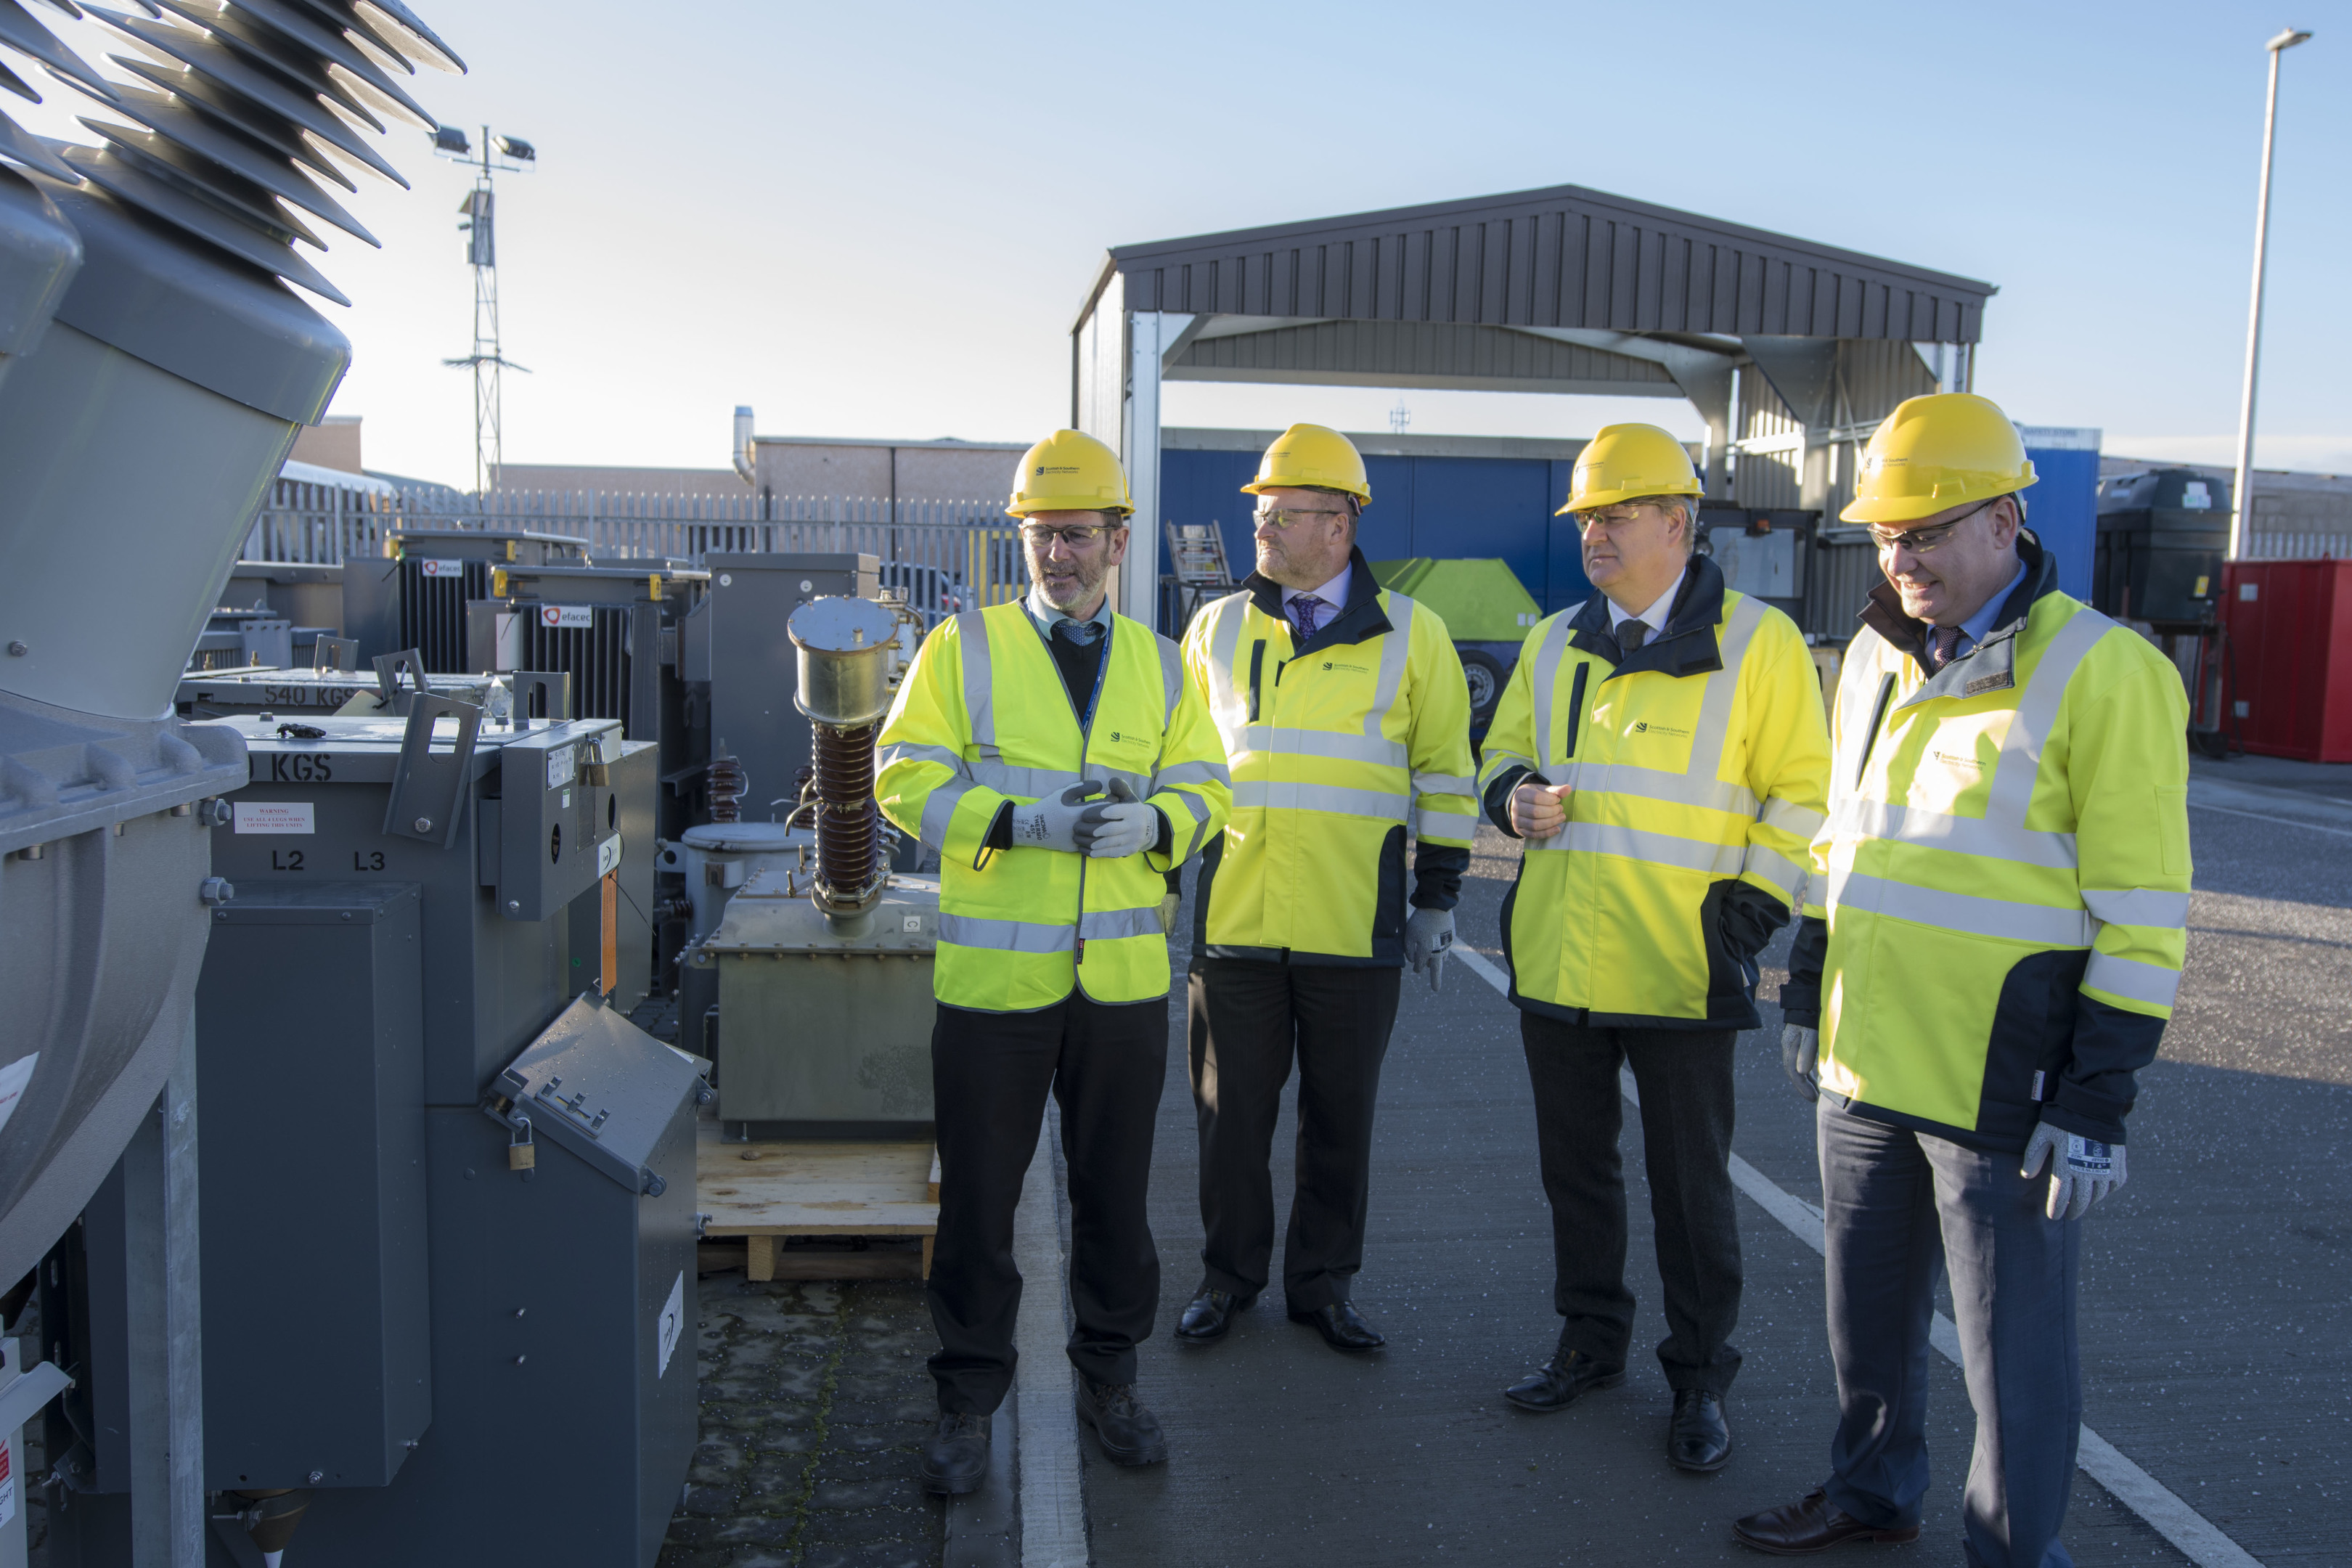 Moray's MP Angus Robertson and MSP Richard Lochhead were given a tour of the depot as part of the opening ceremony.